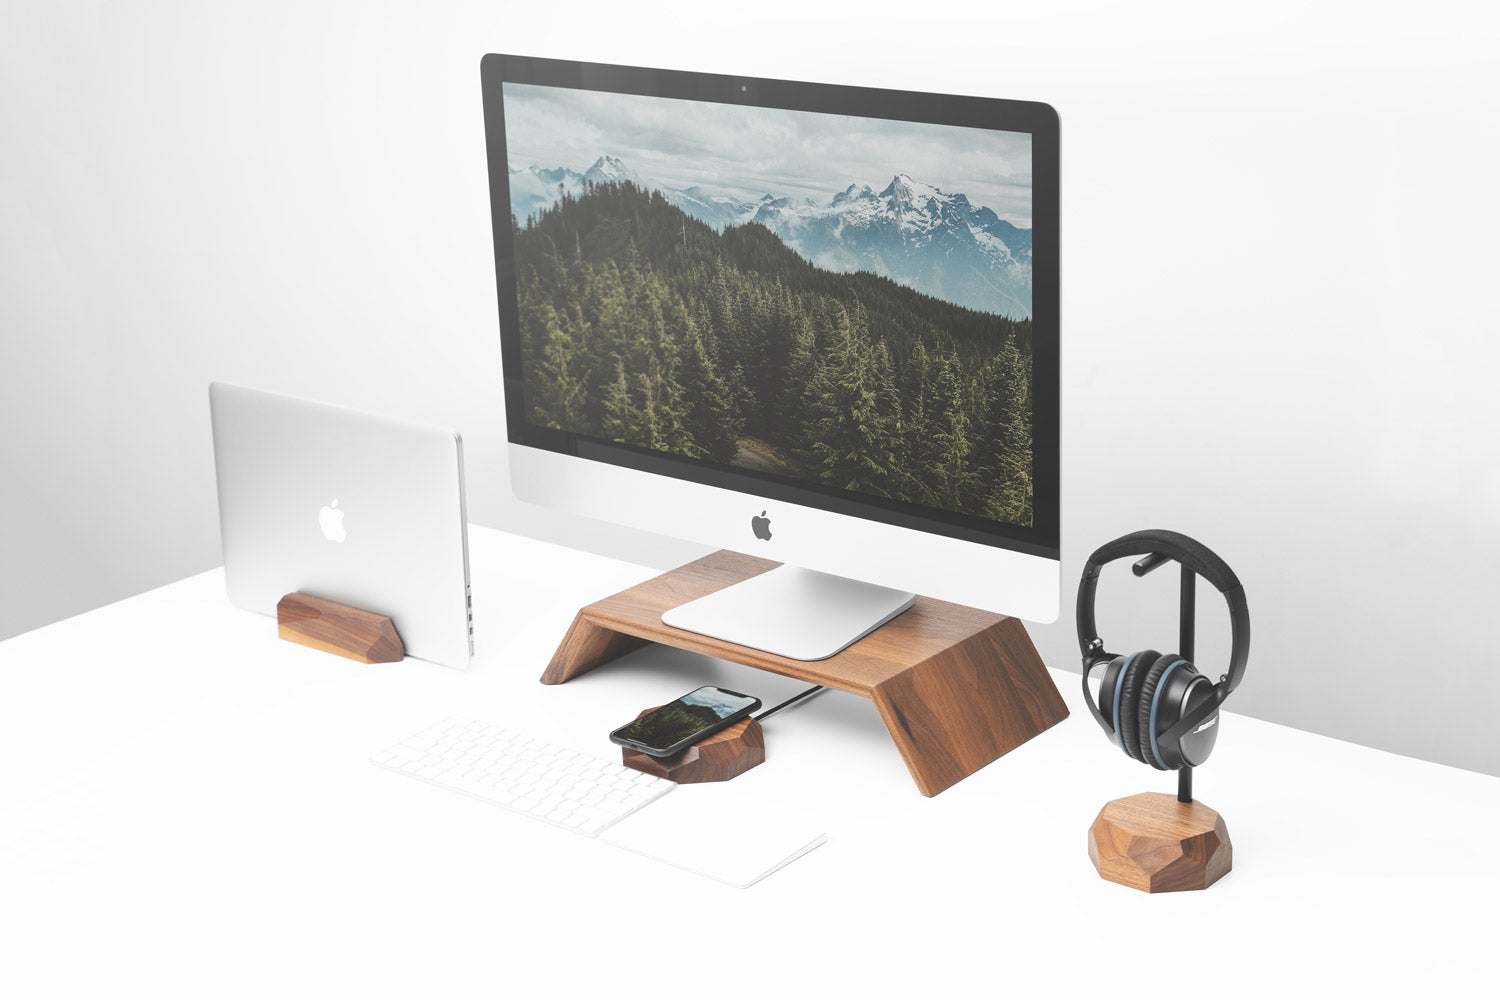 wooden laptop & monitor stands